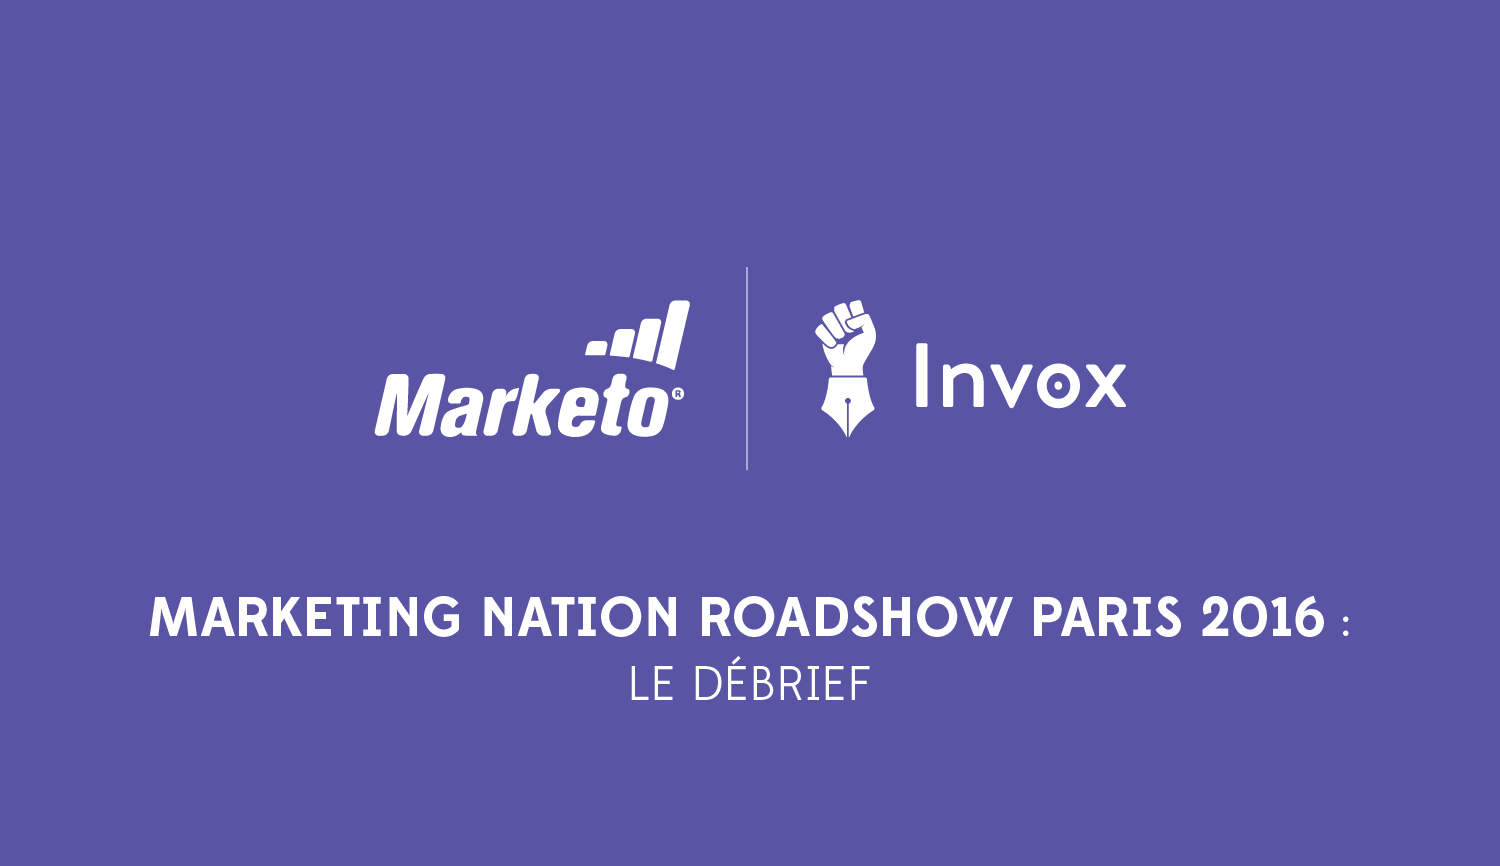 marketing-nation marketo paris 2016 invox